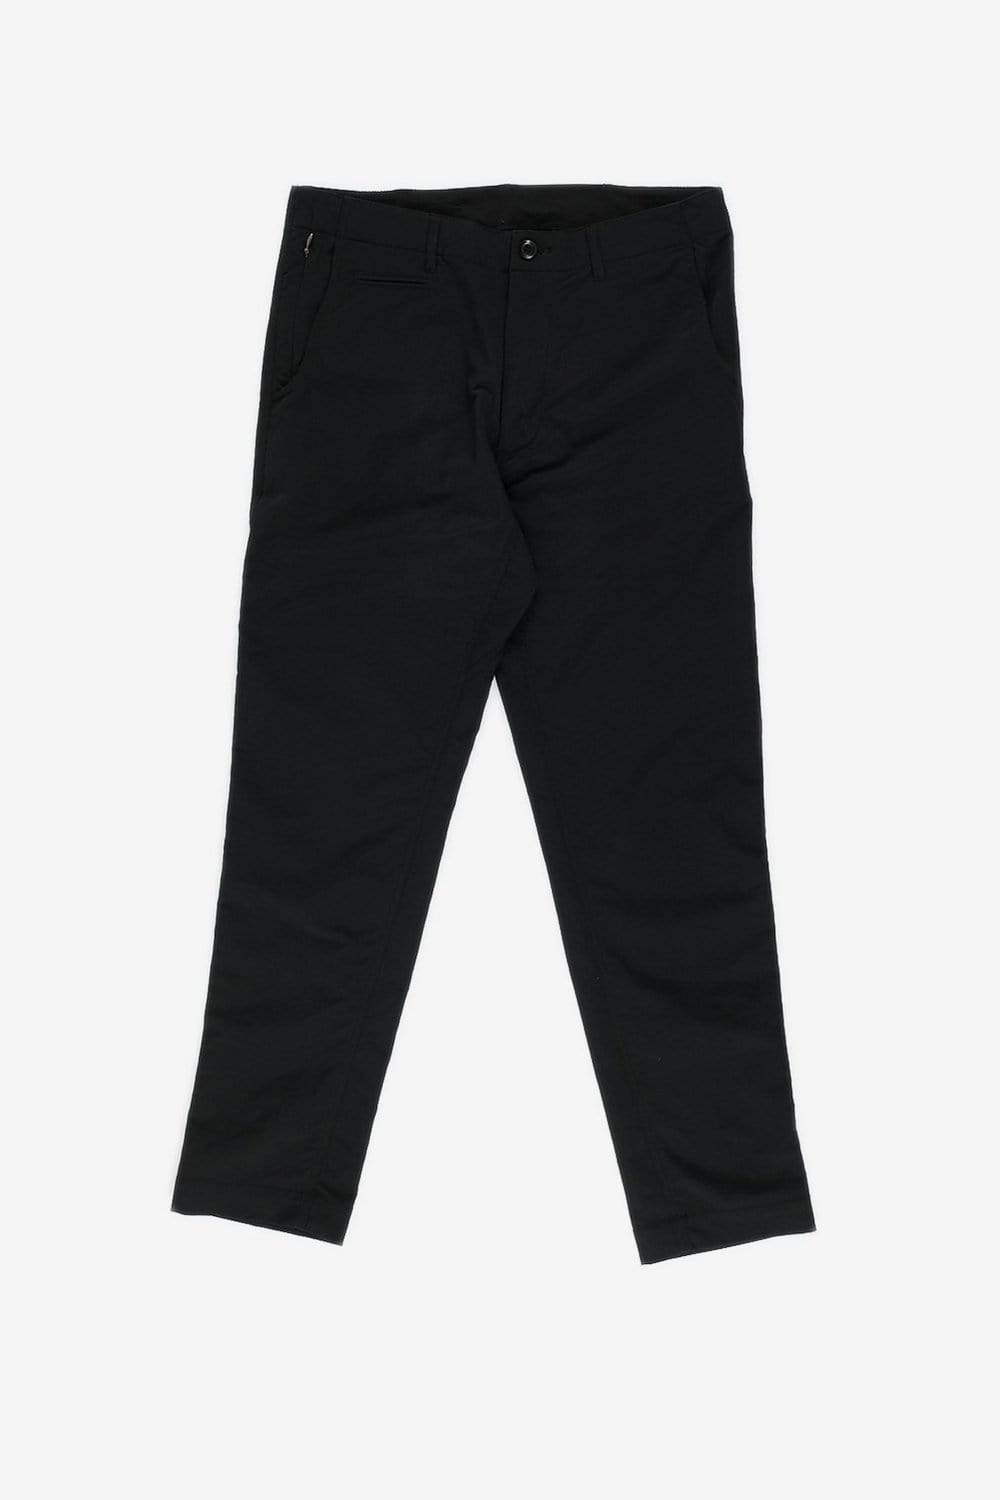 Nanamica Apparel 32 Alphadry Club Pants Black